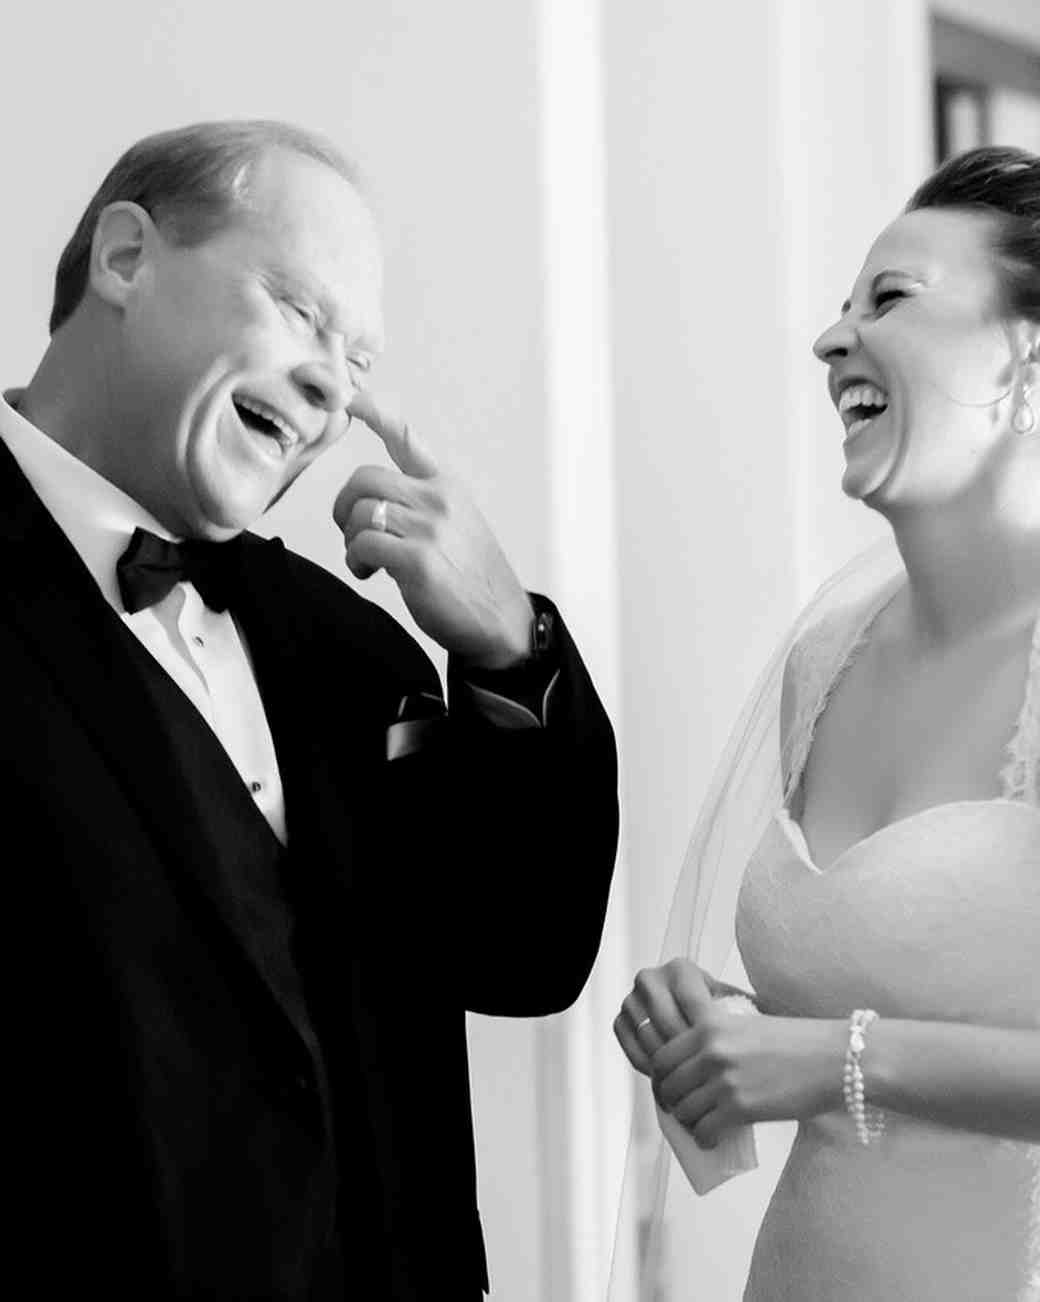 father daughter wedding moment wiping tear laughter